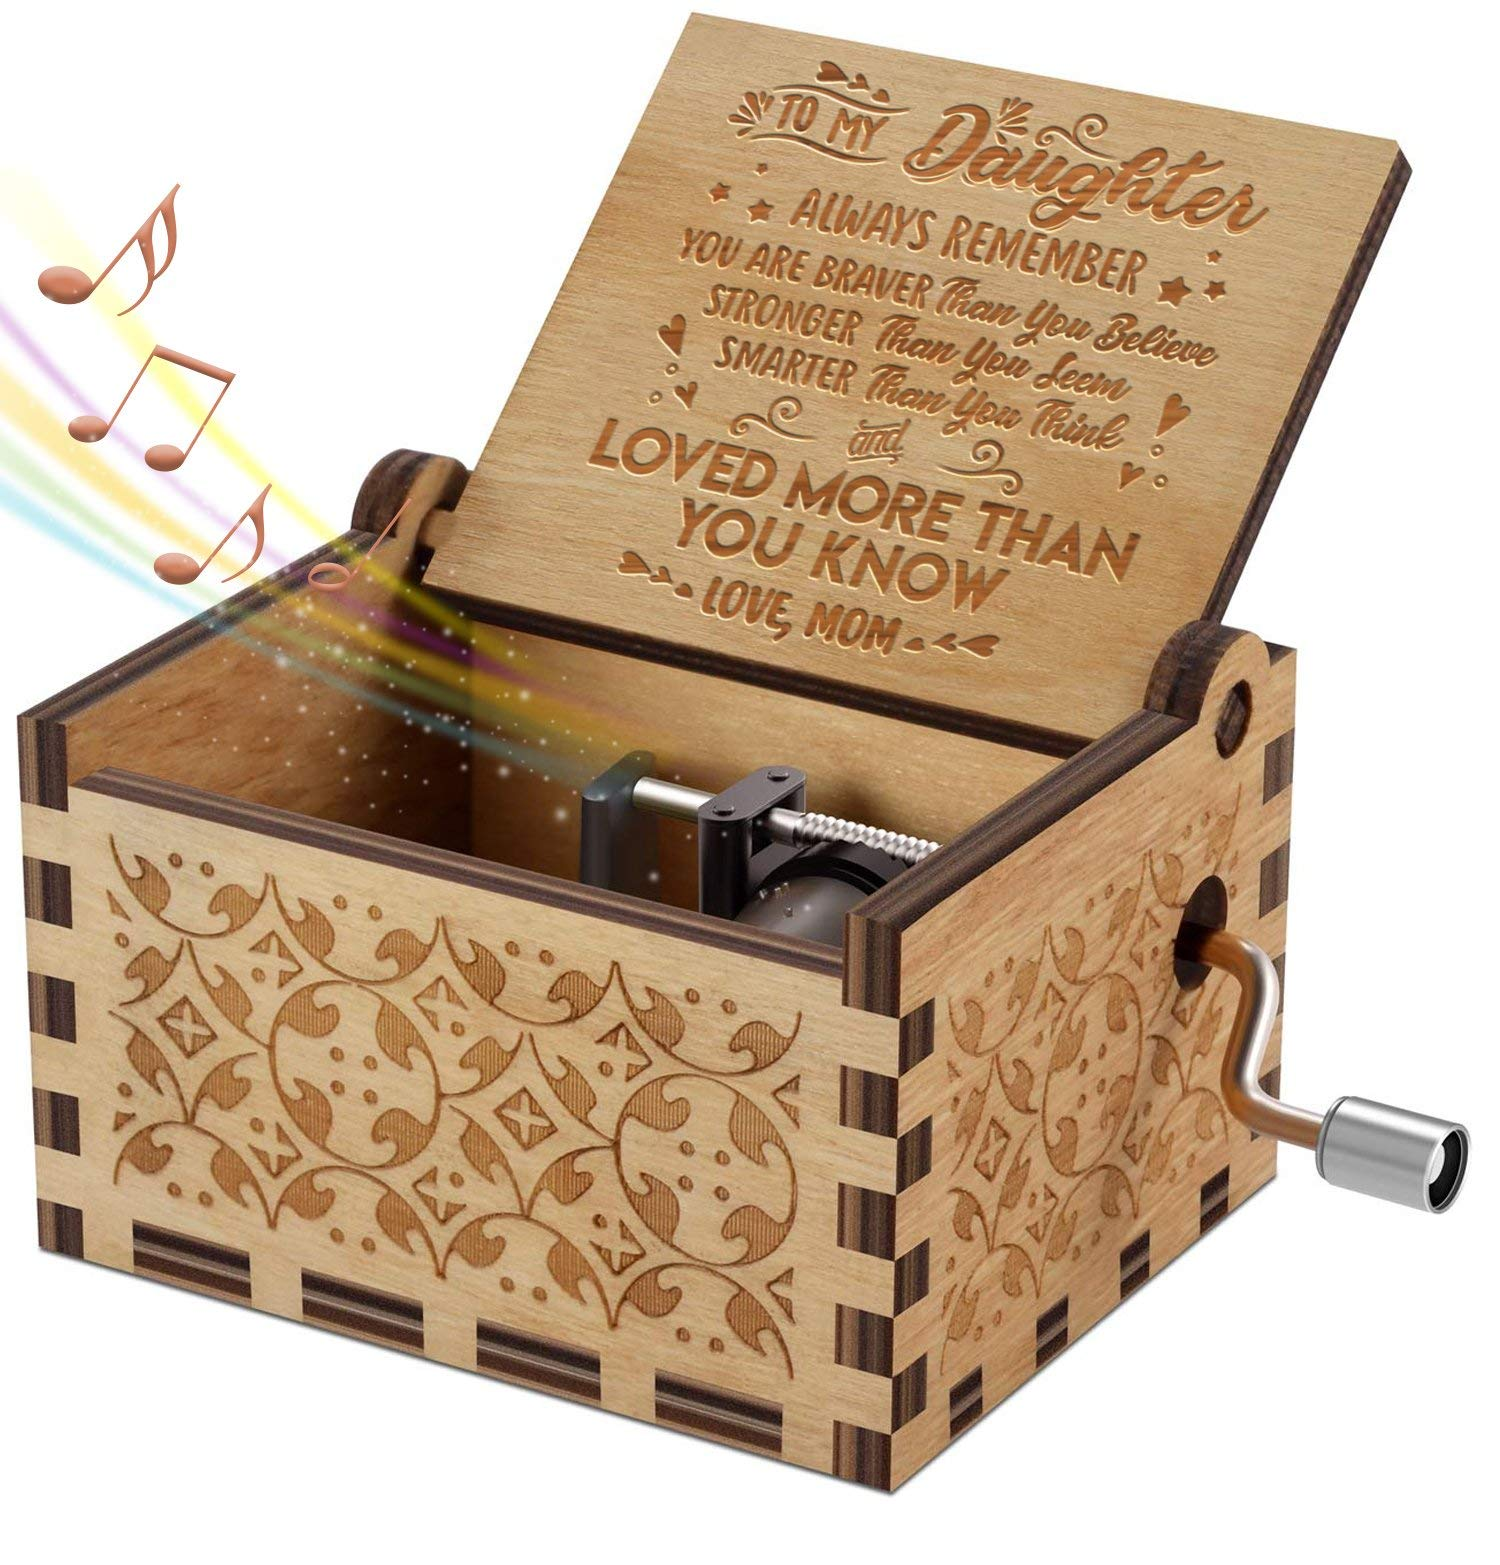 Engraved Music Box - You are My Sunshine, Gift for Daughter from Mom - You Are Stronger Than You Seem, Smarter Than You Think - From Mom by QUARTZILY